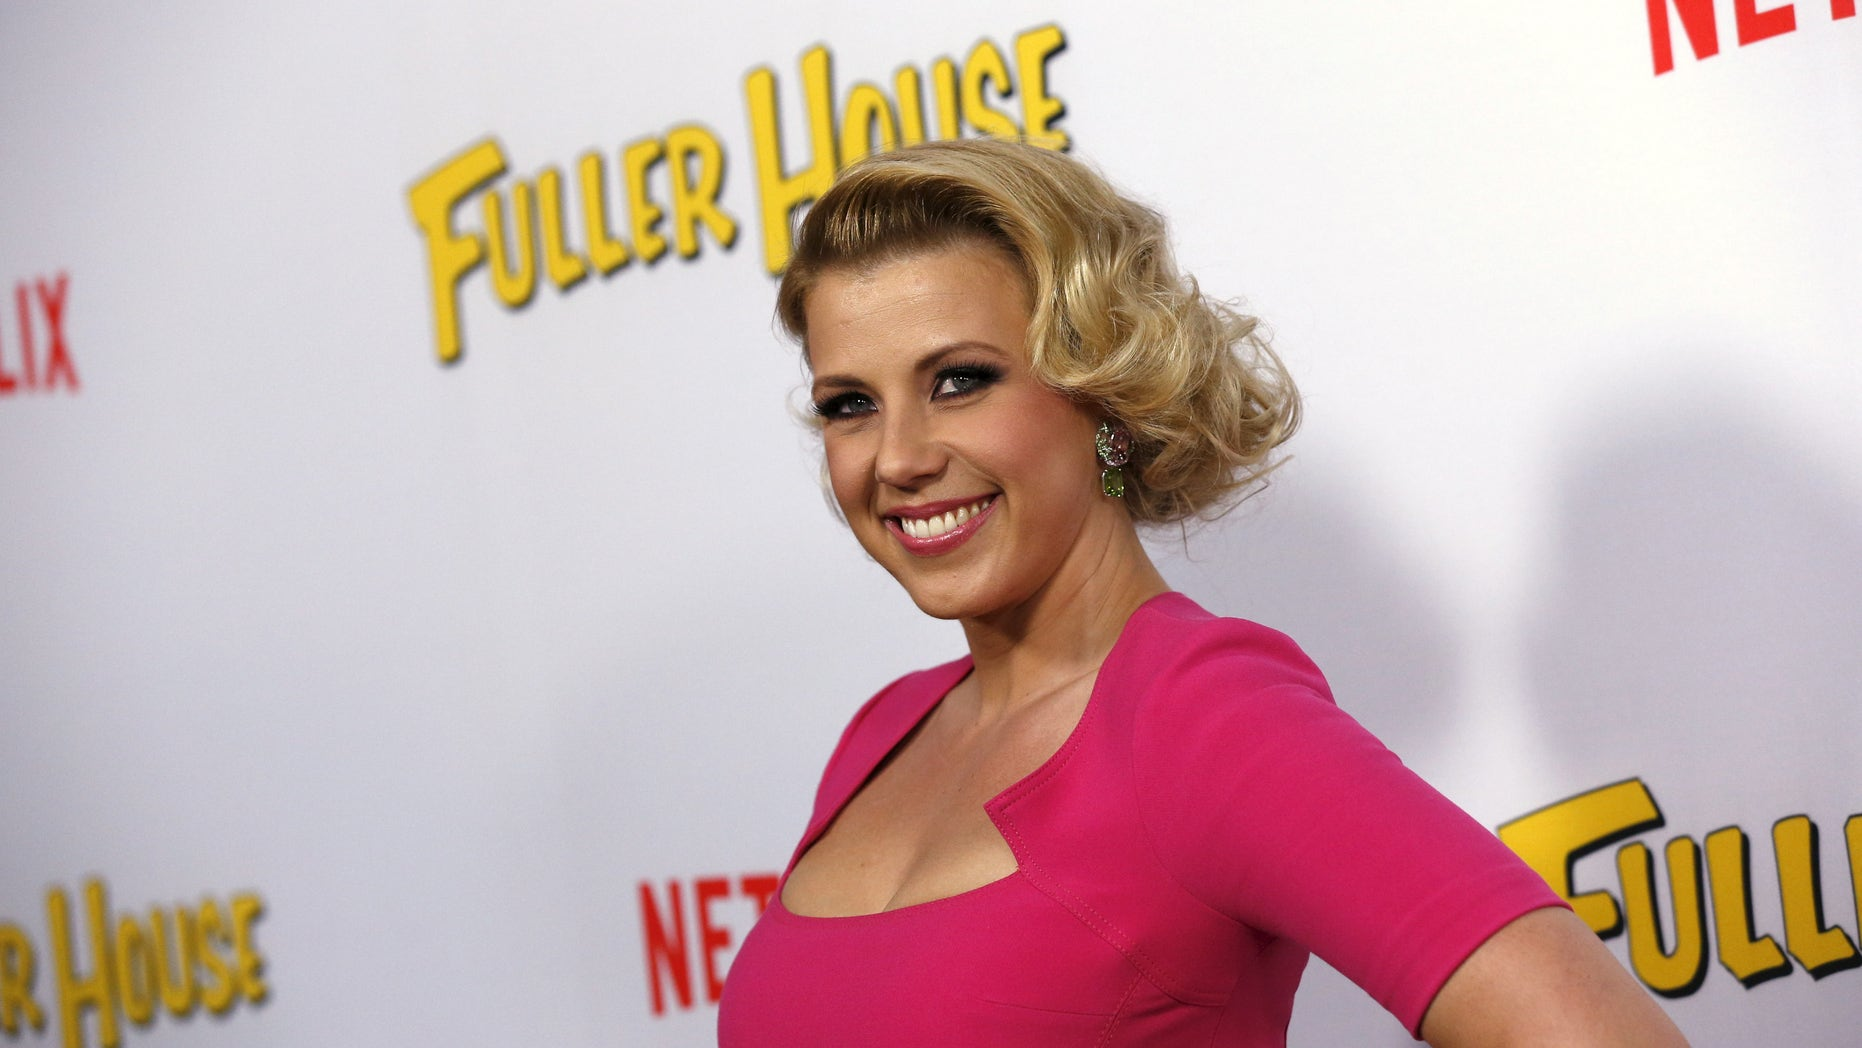 """Cast member Jodie Sweetin poses at the premiere for the Netflix television series """"Fuller House"""" at The Grove in Los Angeles, California February 16, 2016."""